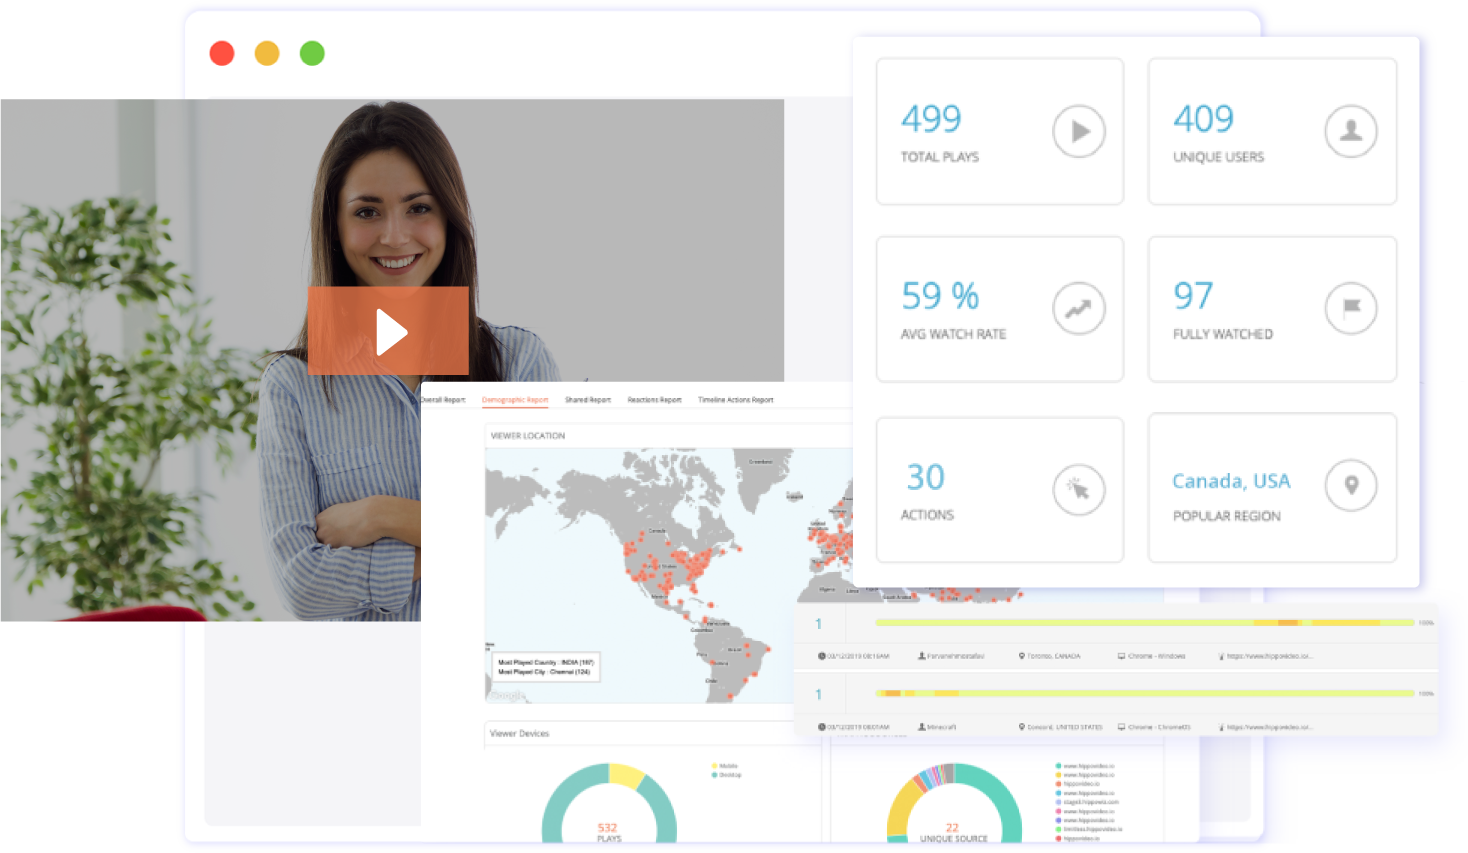 Hubspot video marketing analytics